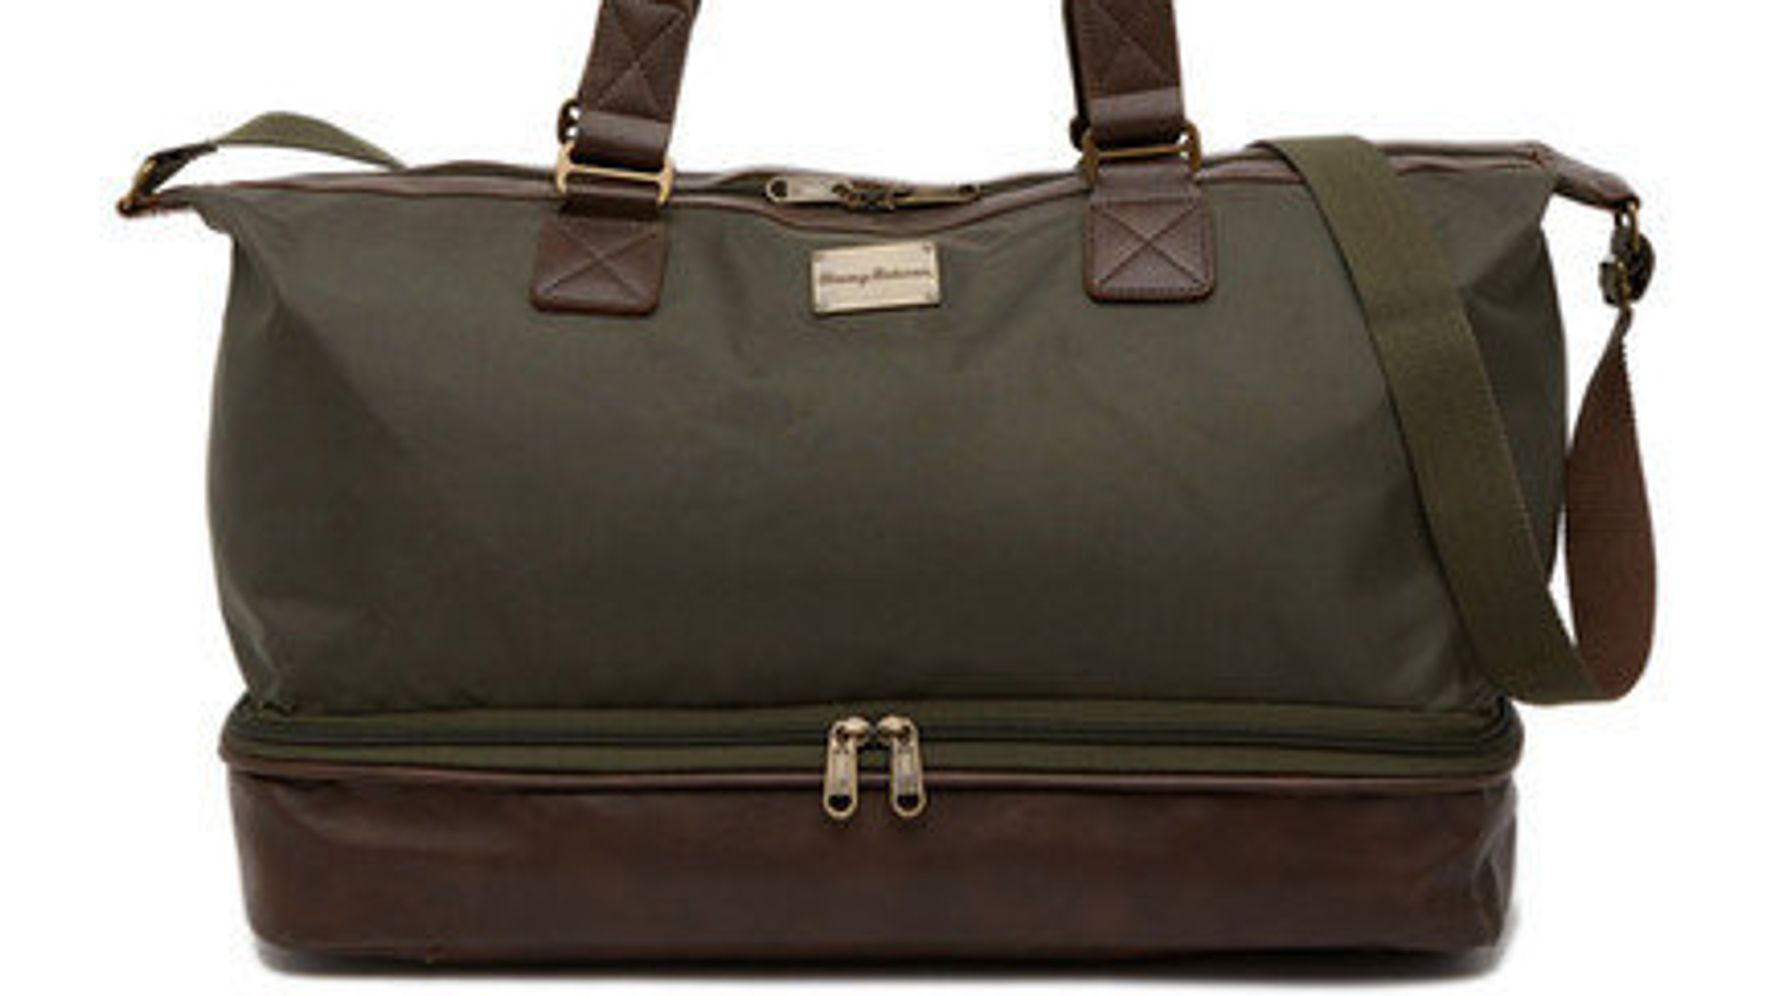 12 Spacious Weekend Bags With Shoe Compartments | HuffPost Life